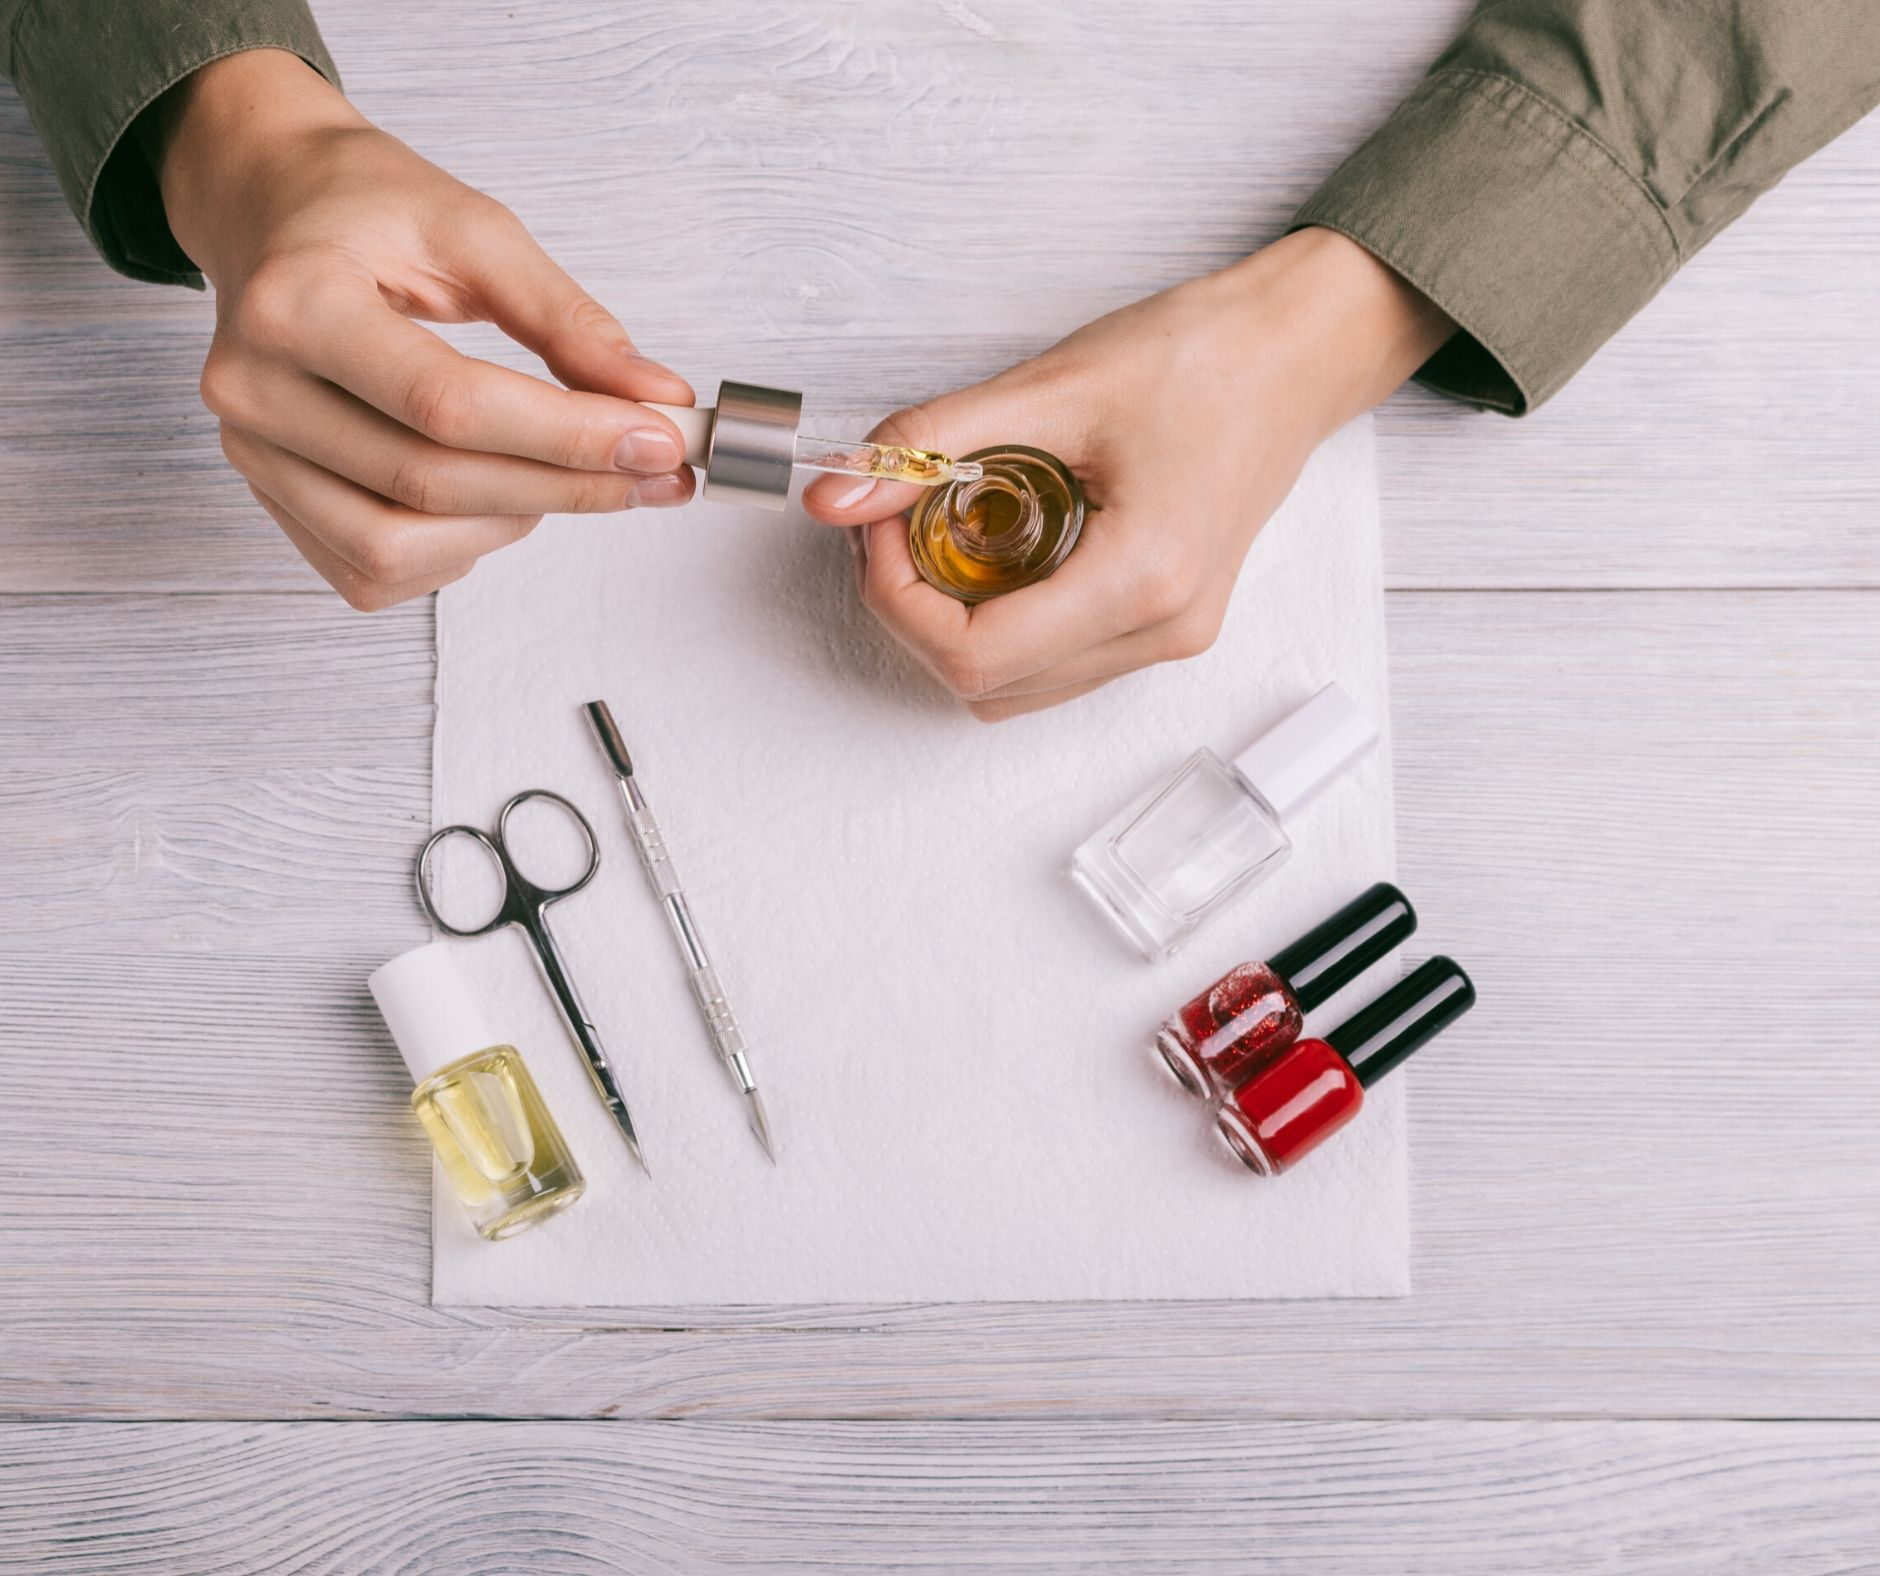 Need to strengthen your nails, especially after removing a gel manicure? Here are 6 simple tips if you have weak, dry or brittle nails.